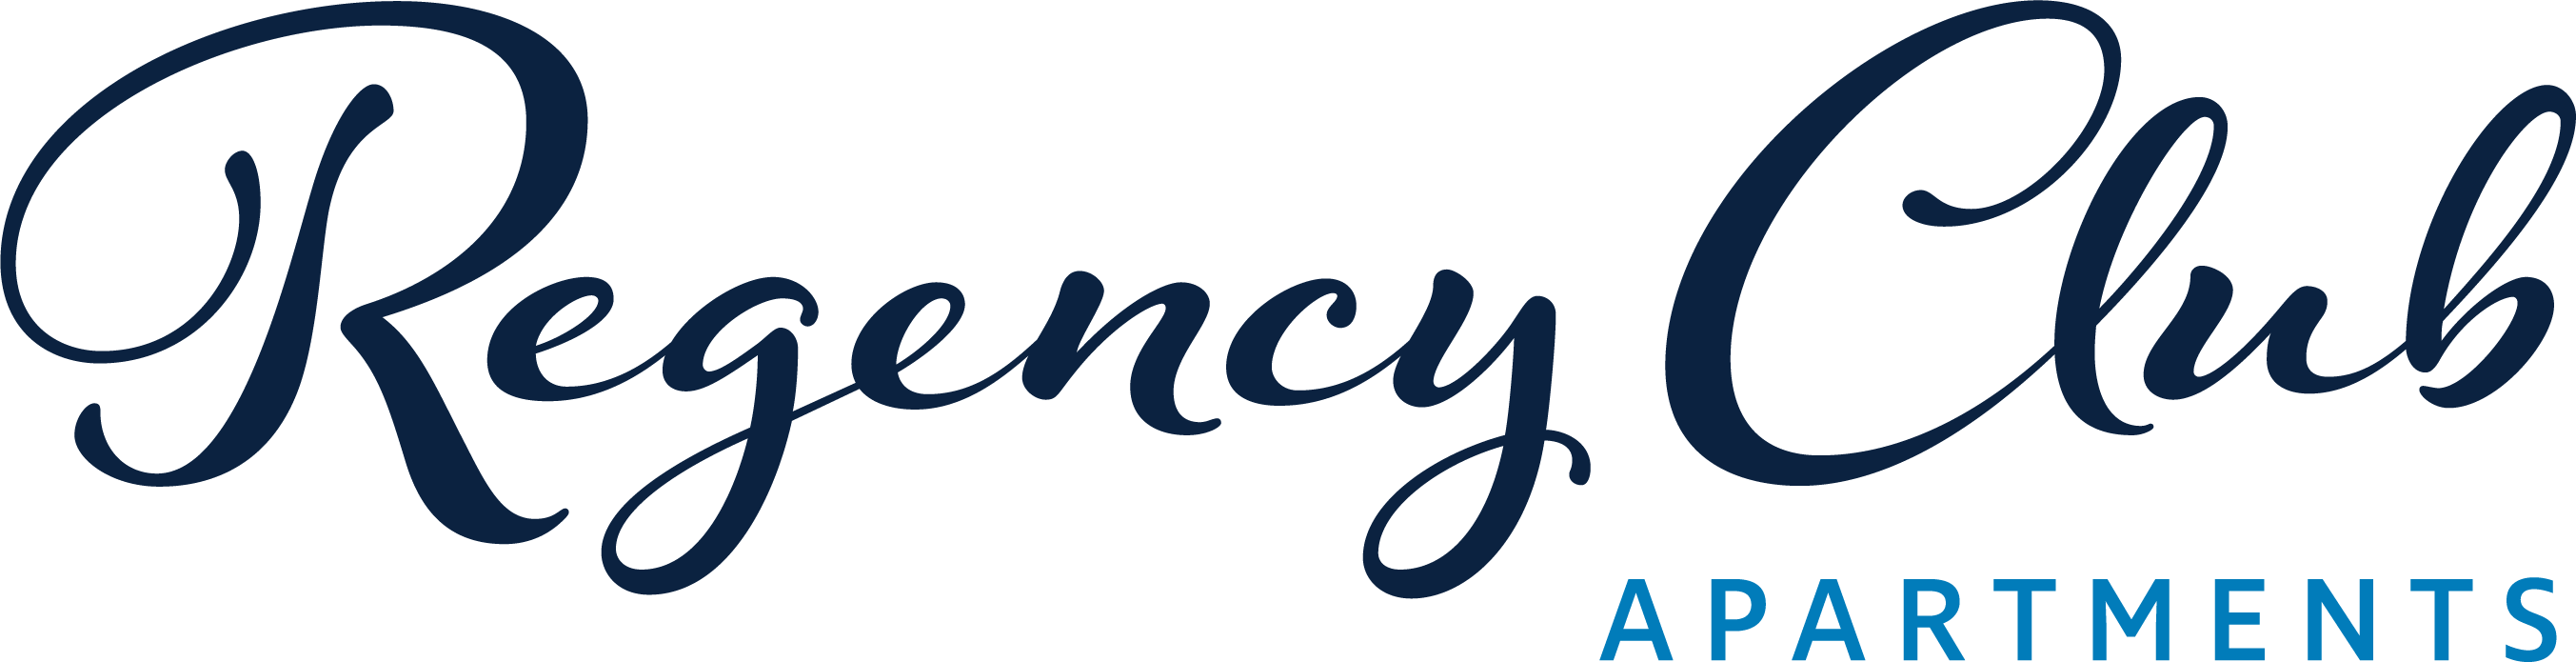 Regency - Regency Club Apartments - Branding